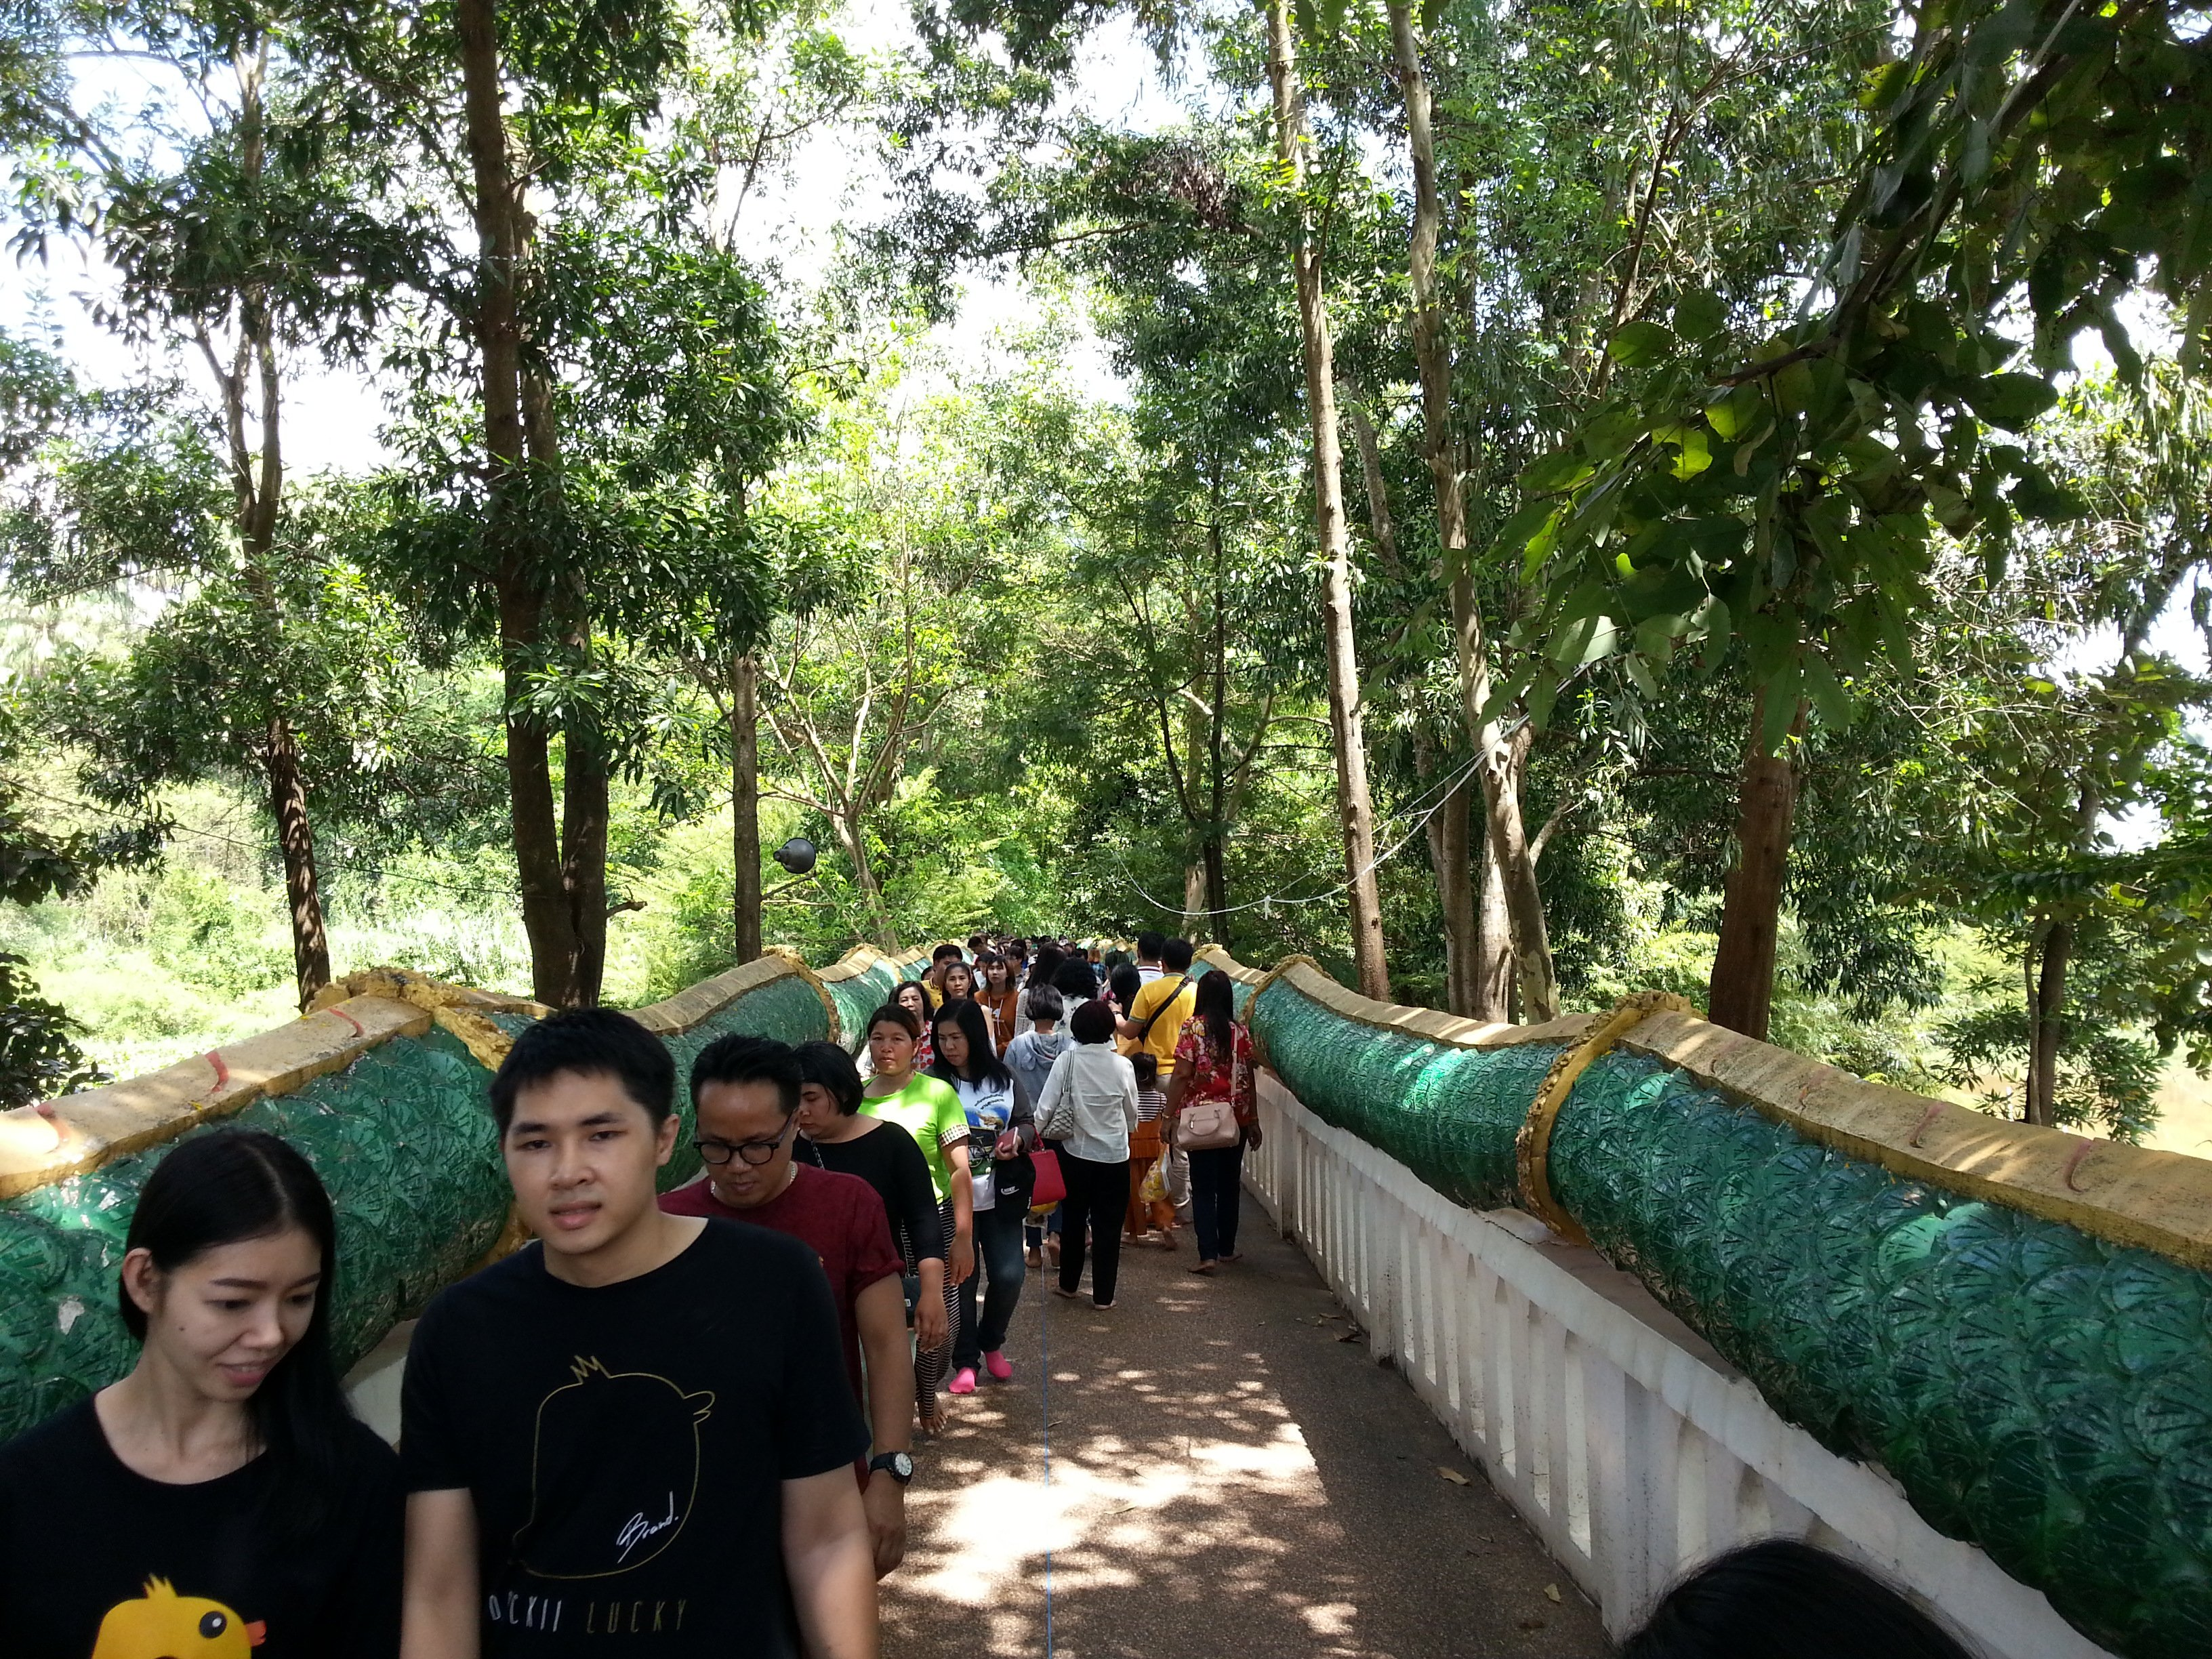 Naga bridge to Wat Kham Chanot Forest